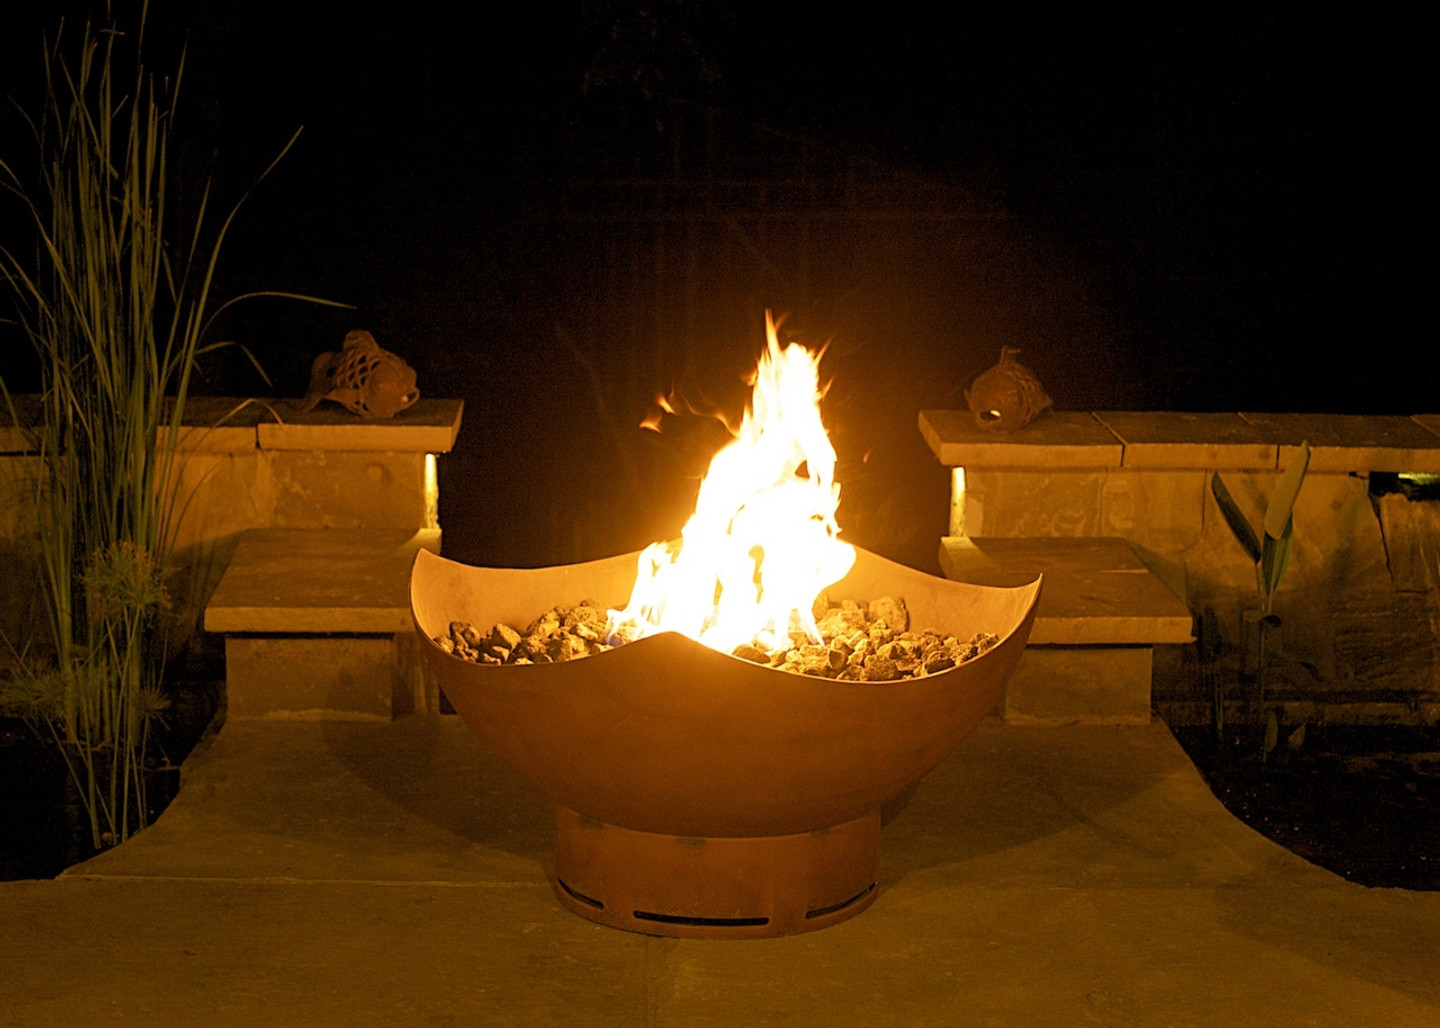 Manta Ray fire pit offered in wood burning, liquid propane or natural gas fueled.